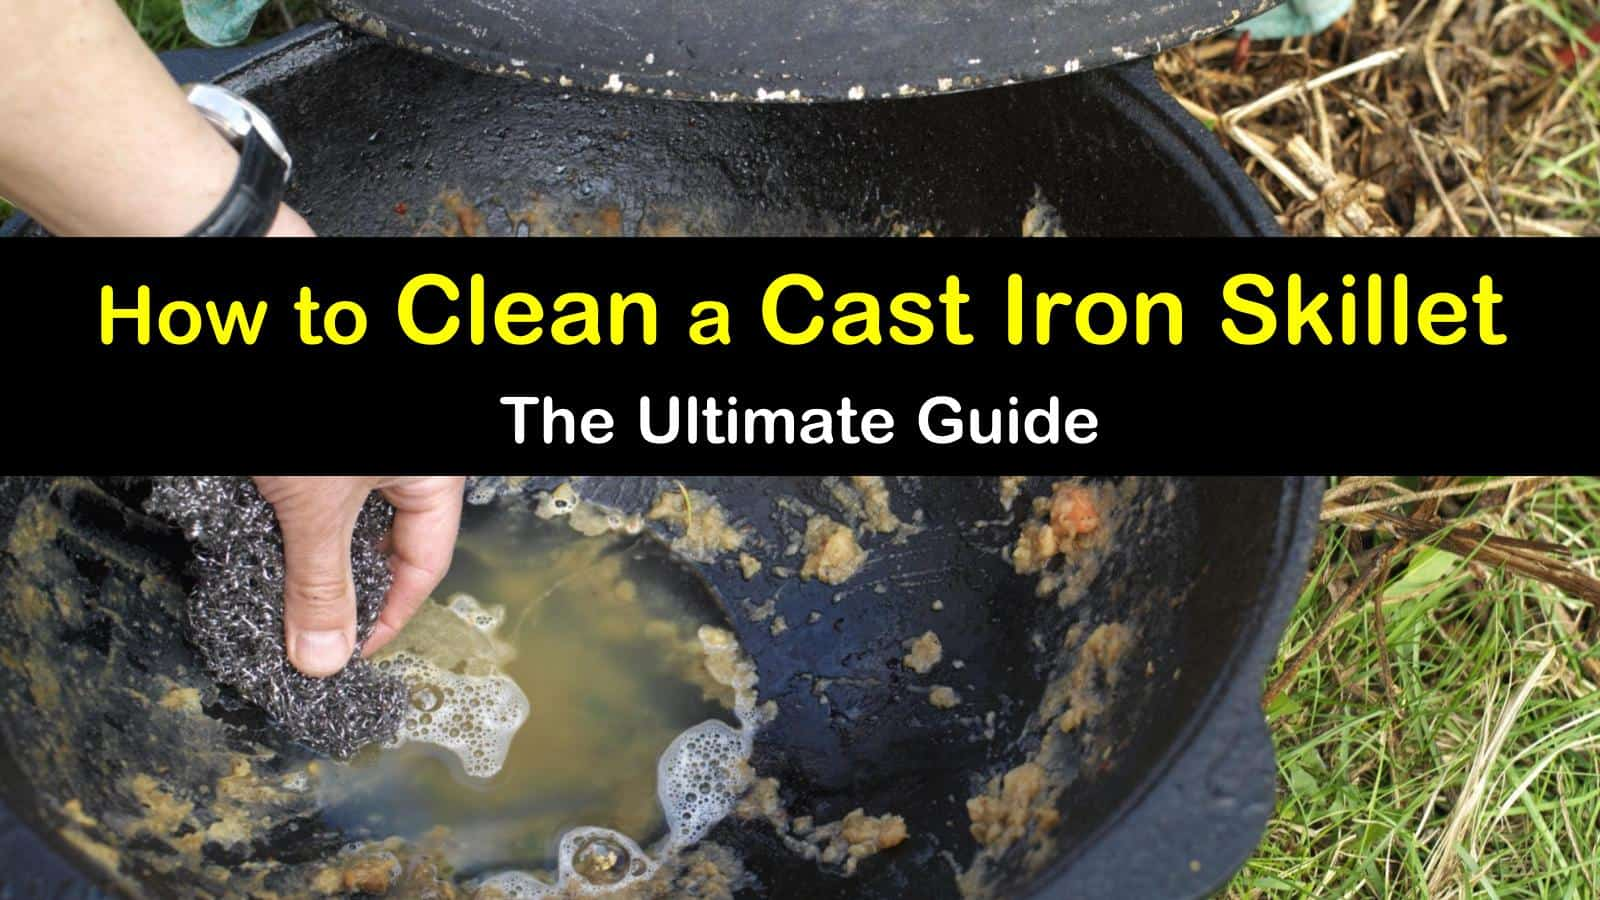 how to clean a cast iron skillet titleimg1